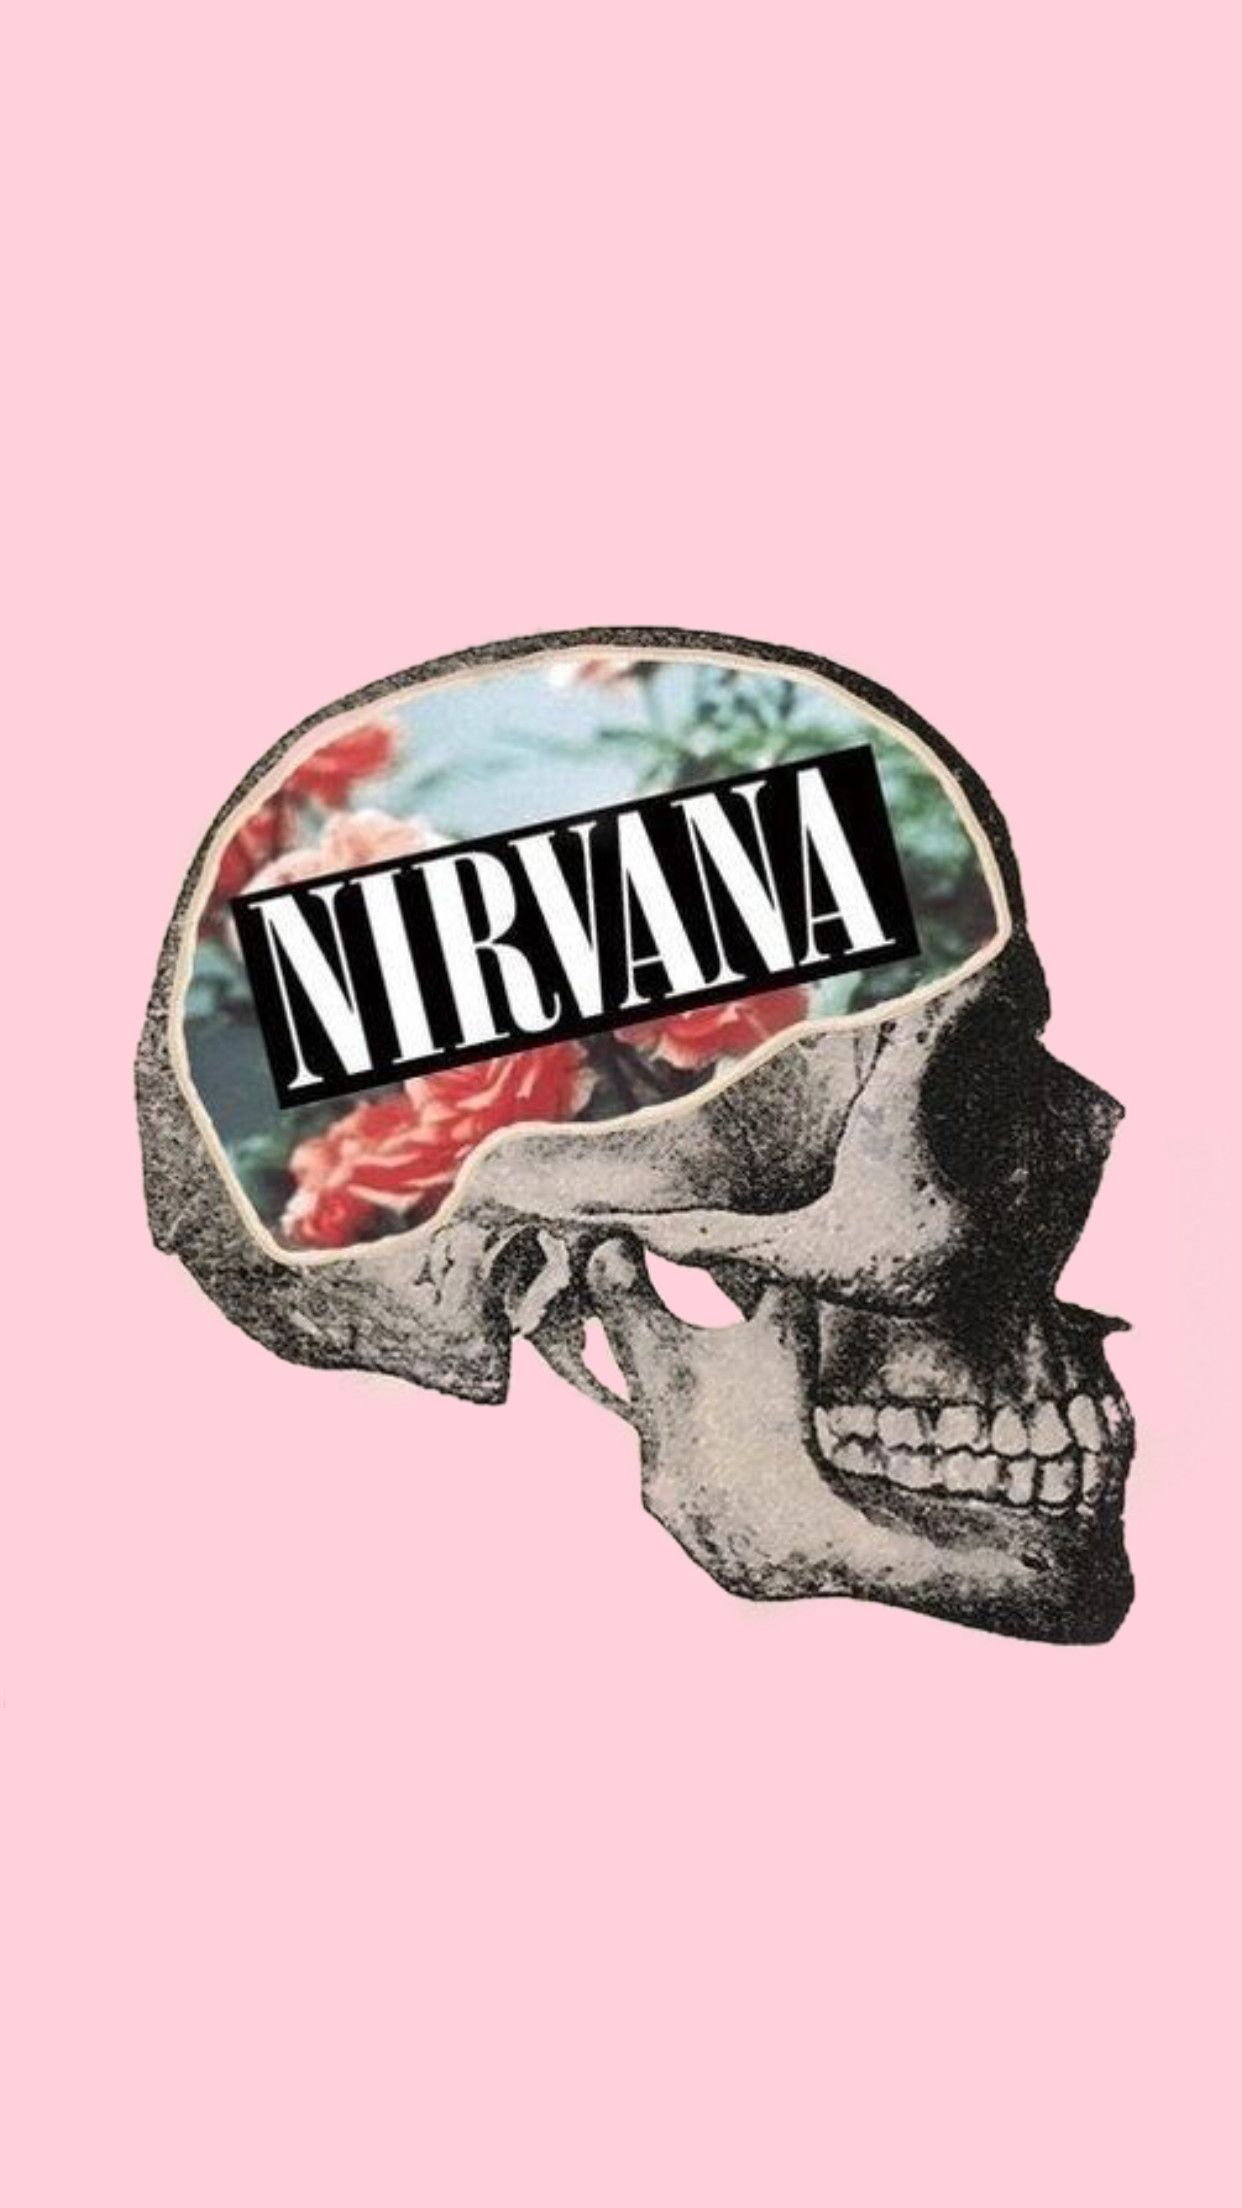 1242x2208 64+ Nirvana Iphone Wallpapers on WallpaperPlay